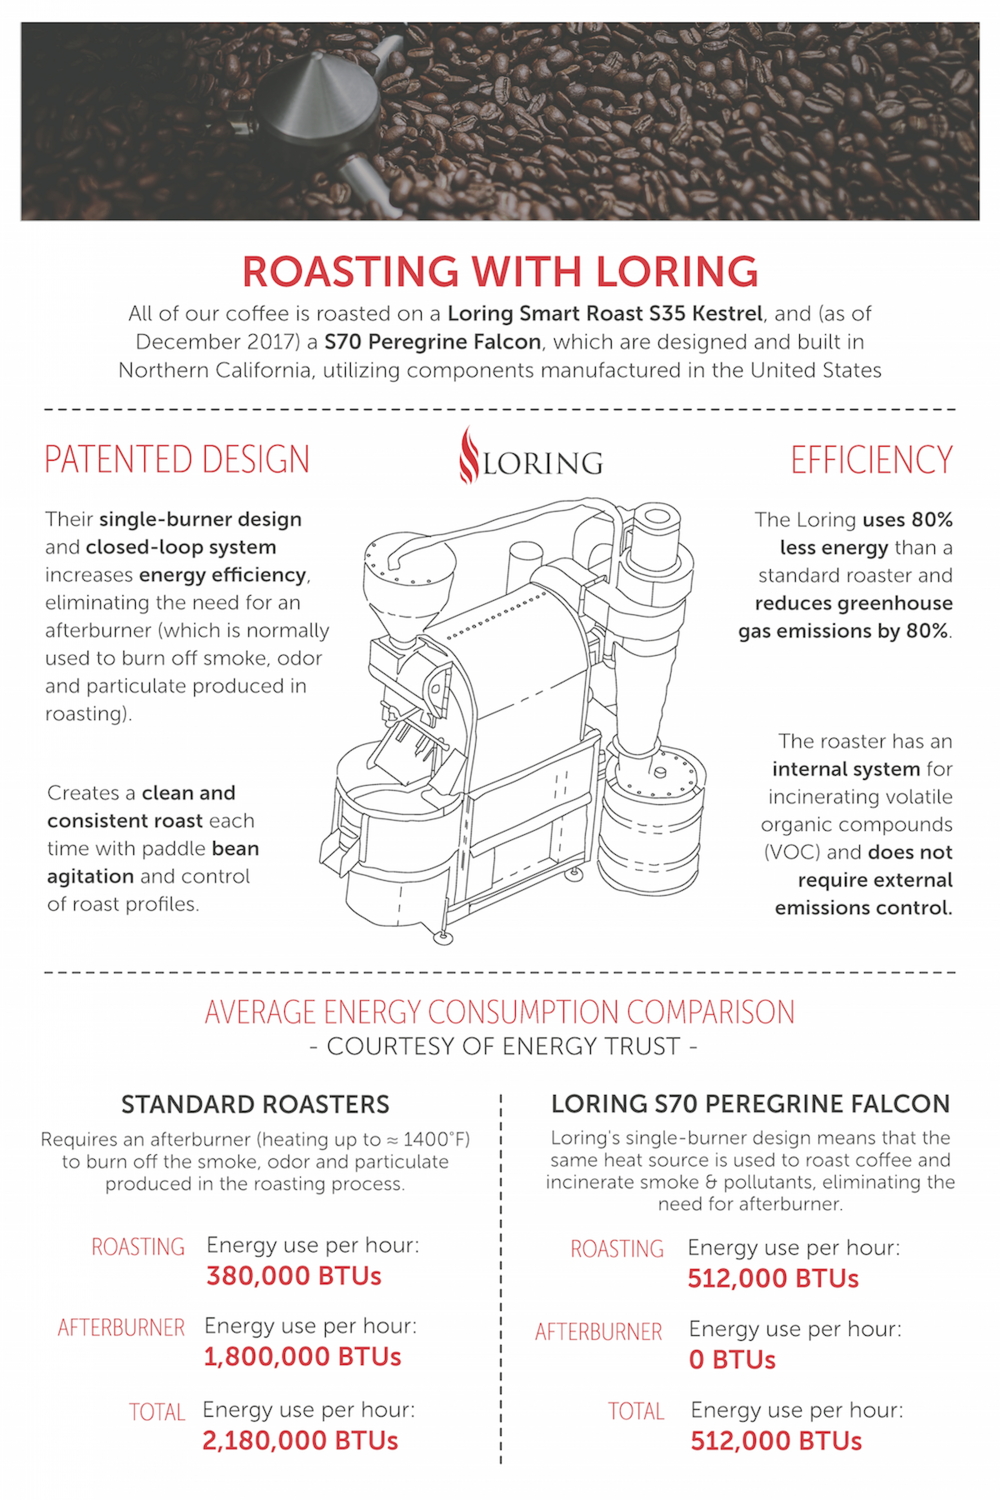 Nossa Familia Coffee - Roasting with Loring